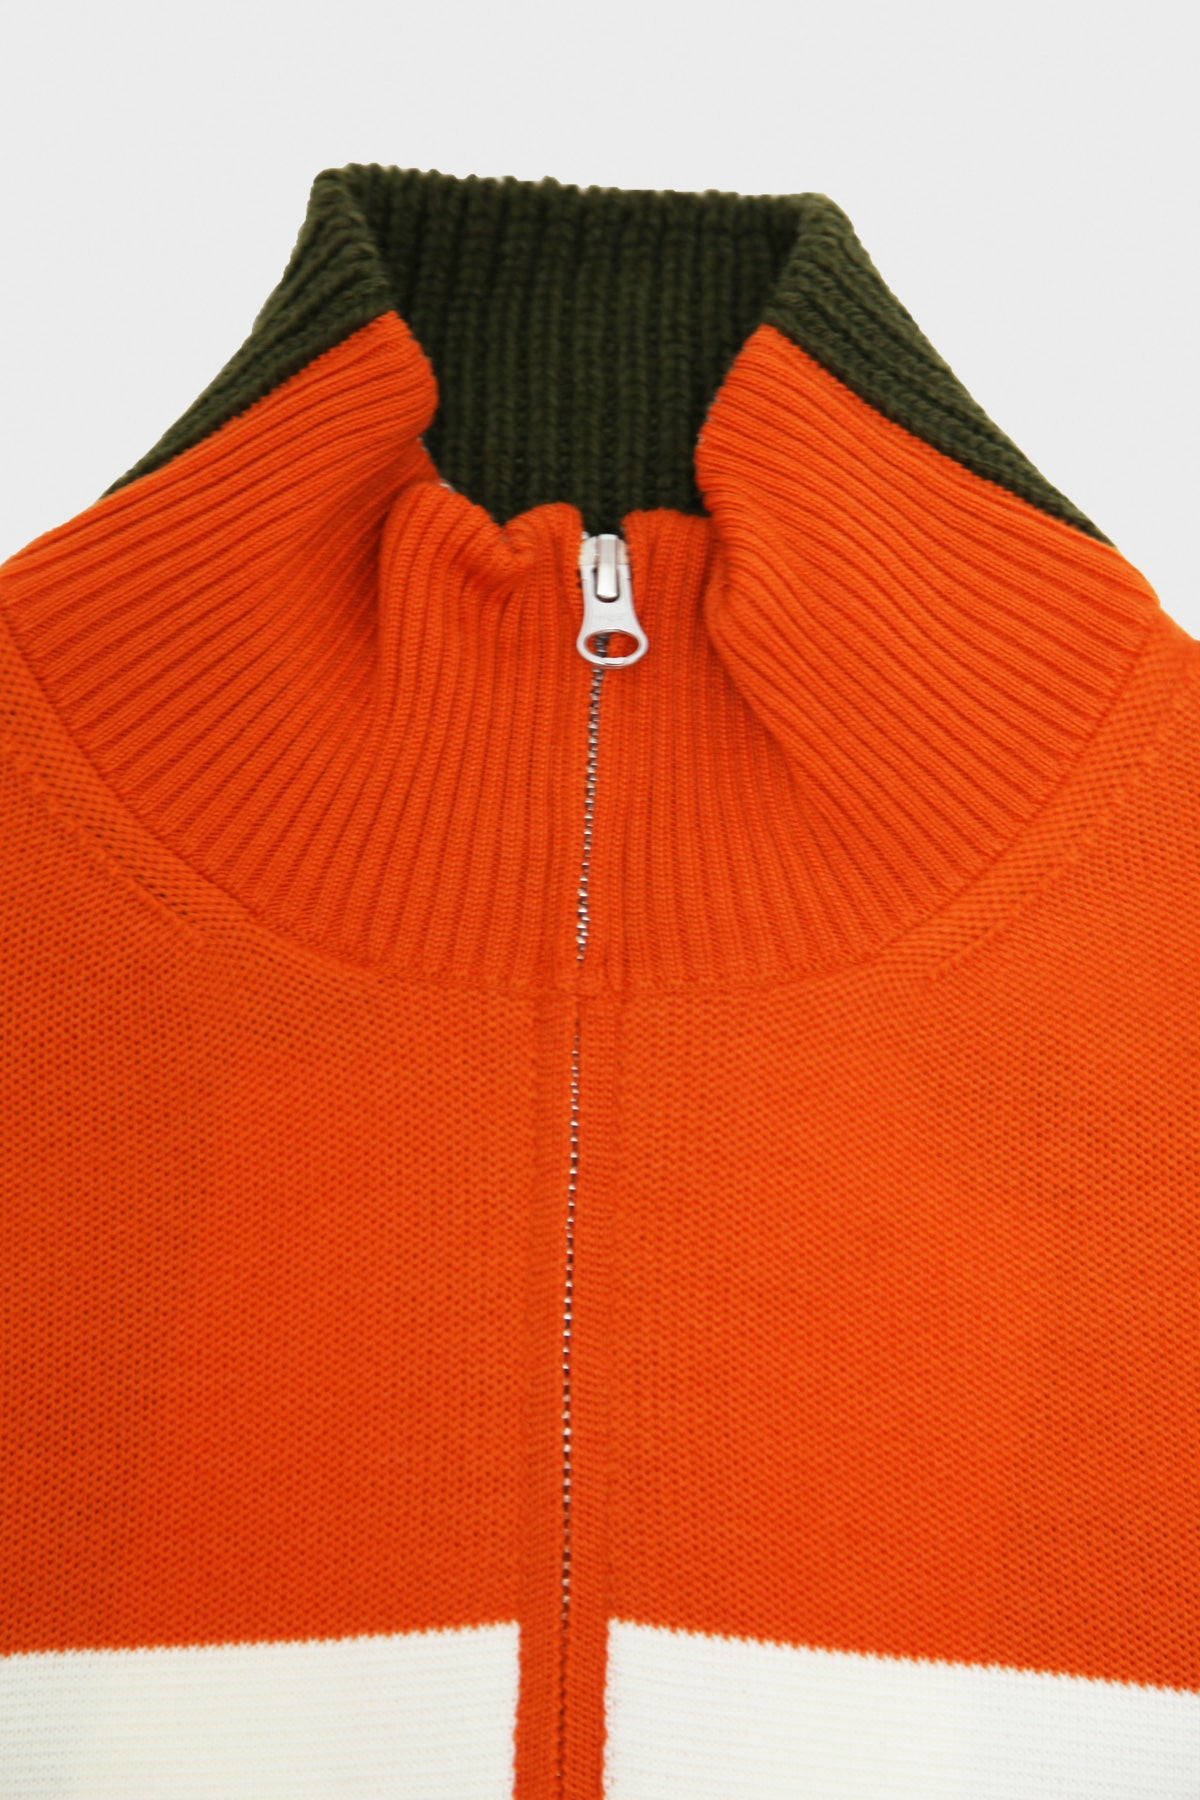 Junya Watanabe MAN - Worsted Wool Milano Rib Sweater - Horizontal Stripe x Wool Jersey - Orange/Khaki - Canoe Club